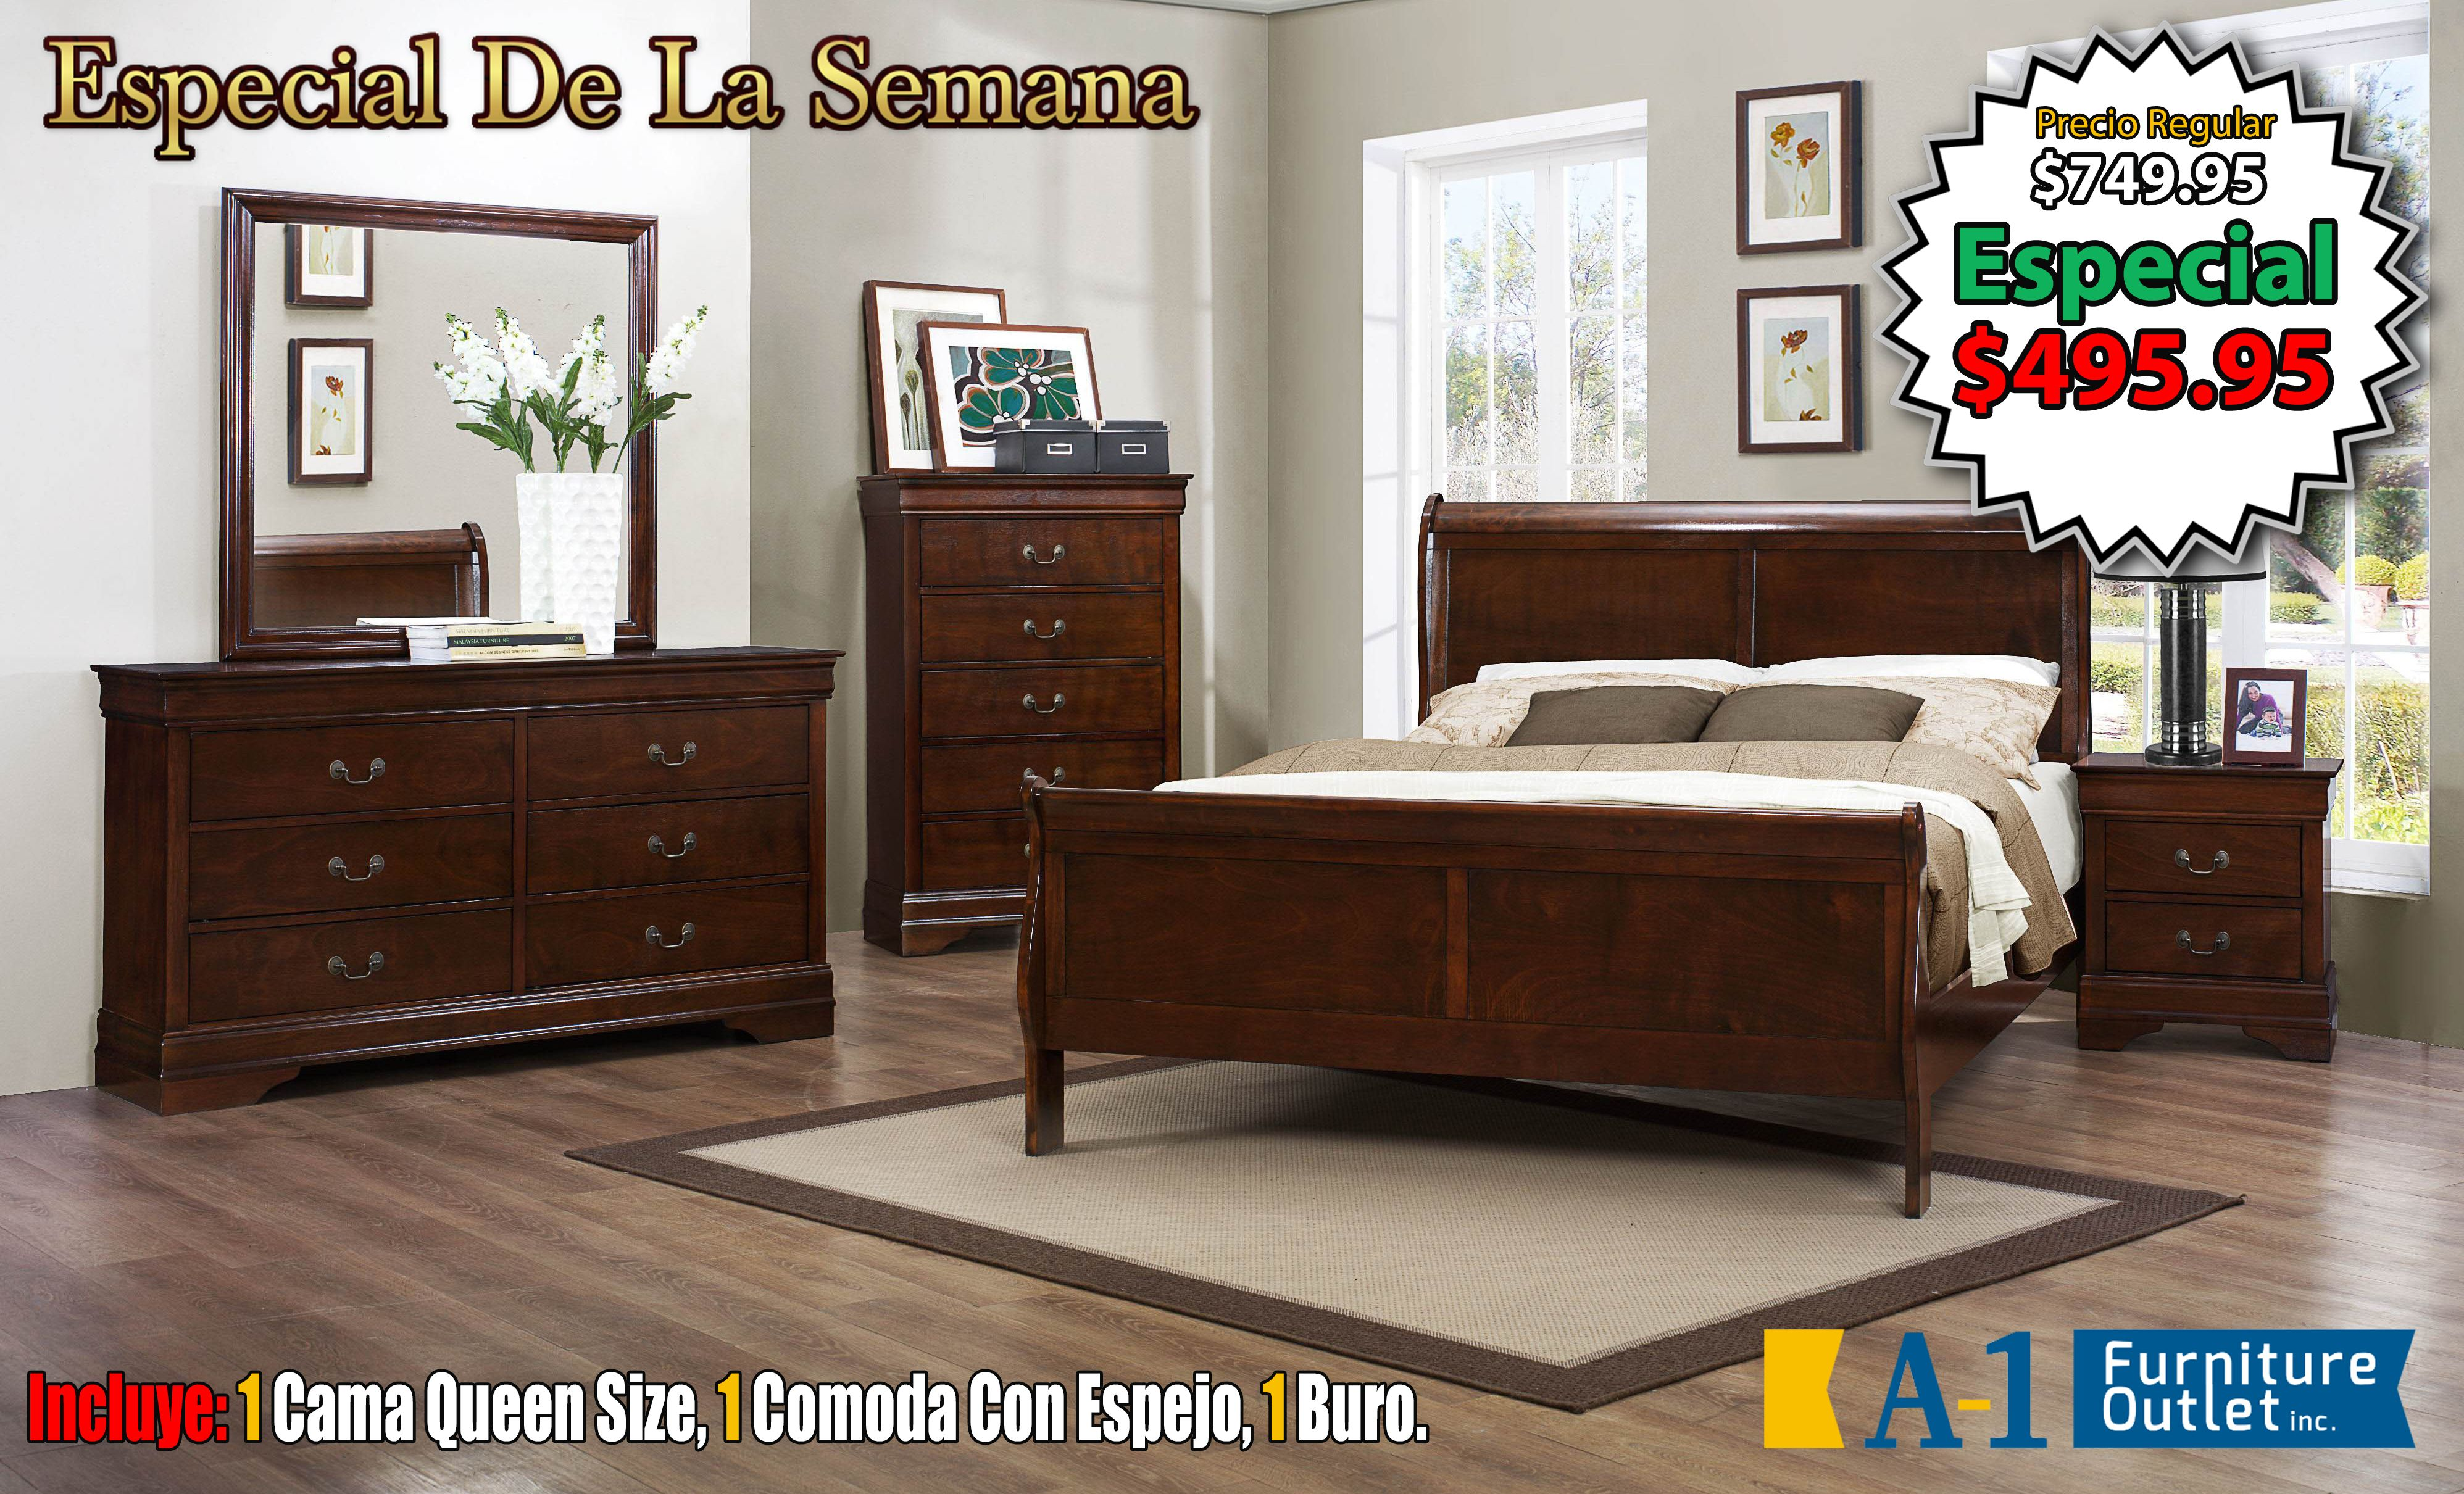 Pin by A-1 Furniture on A-1 Furniture | Sleigh bedroom set ...